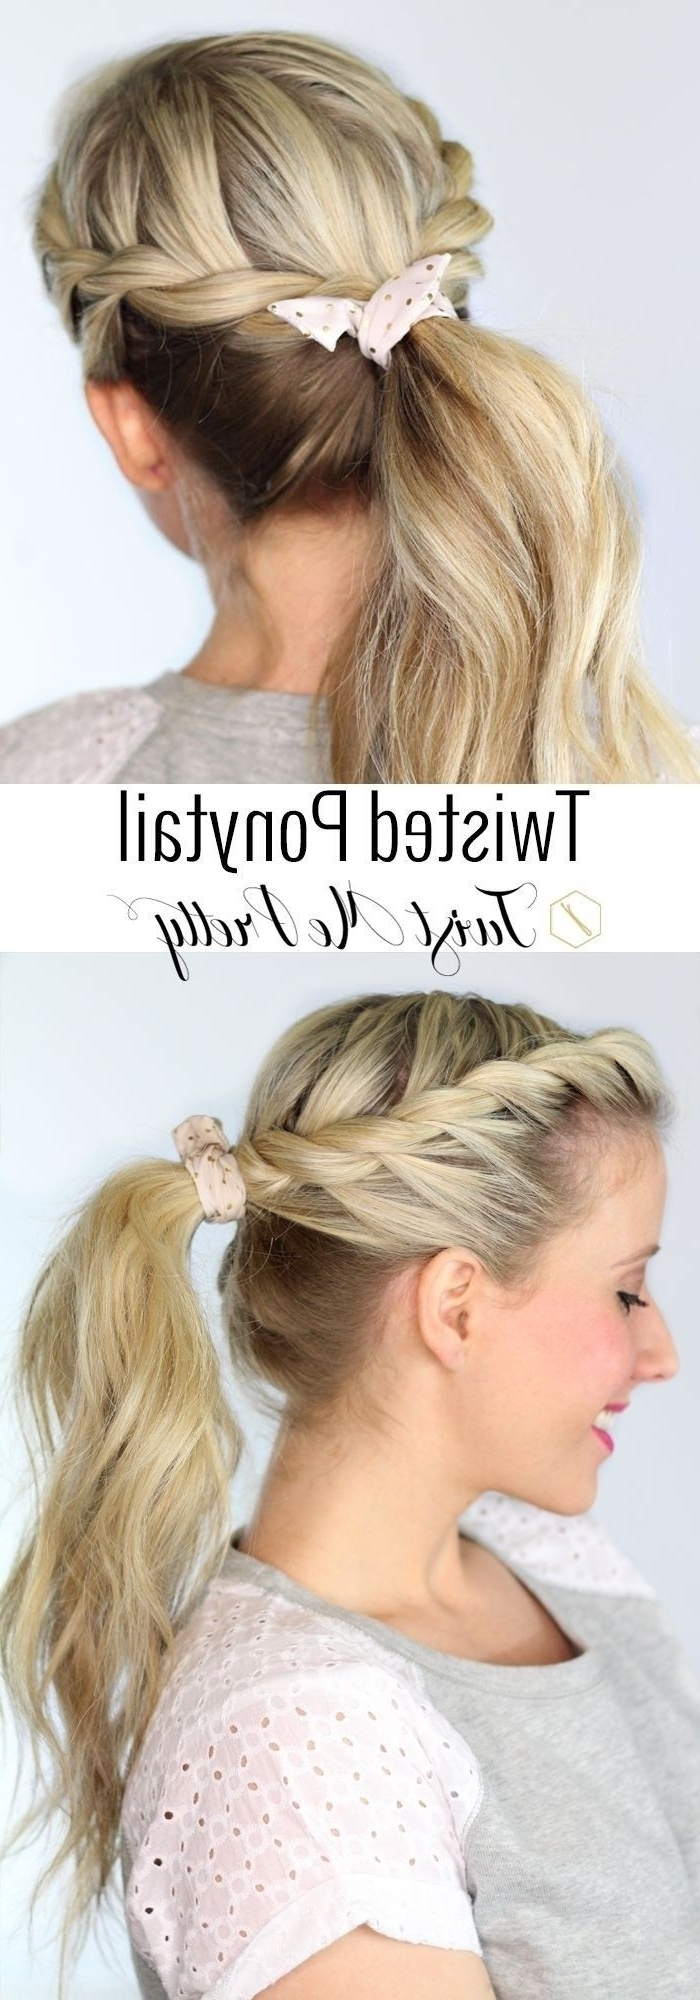 Most Recent Braided Headband And Twisted Side Pony Hairstyles For 22 Great Ponytail Hairstyles For Girls – Pretty Designs (View 6 of 20)